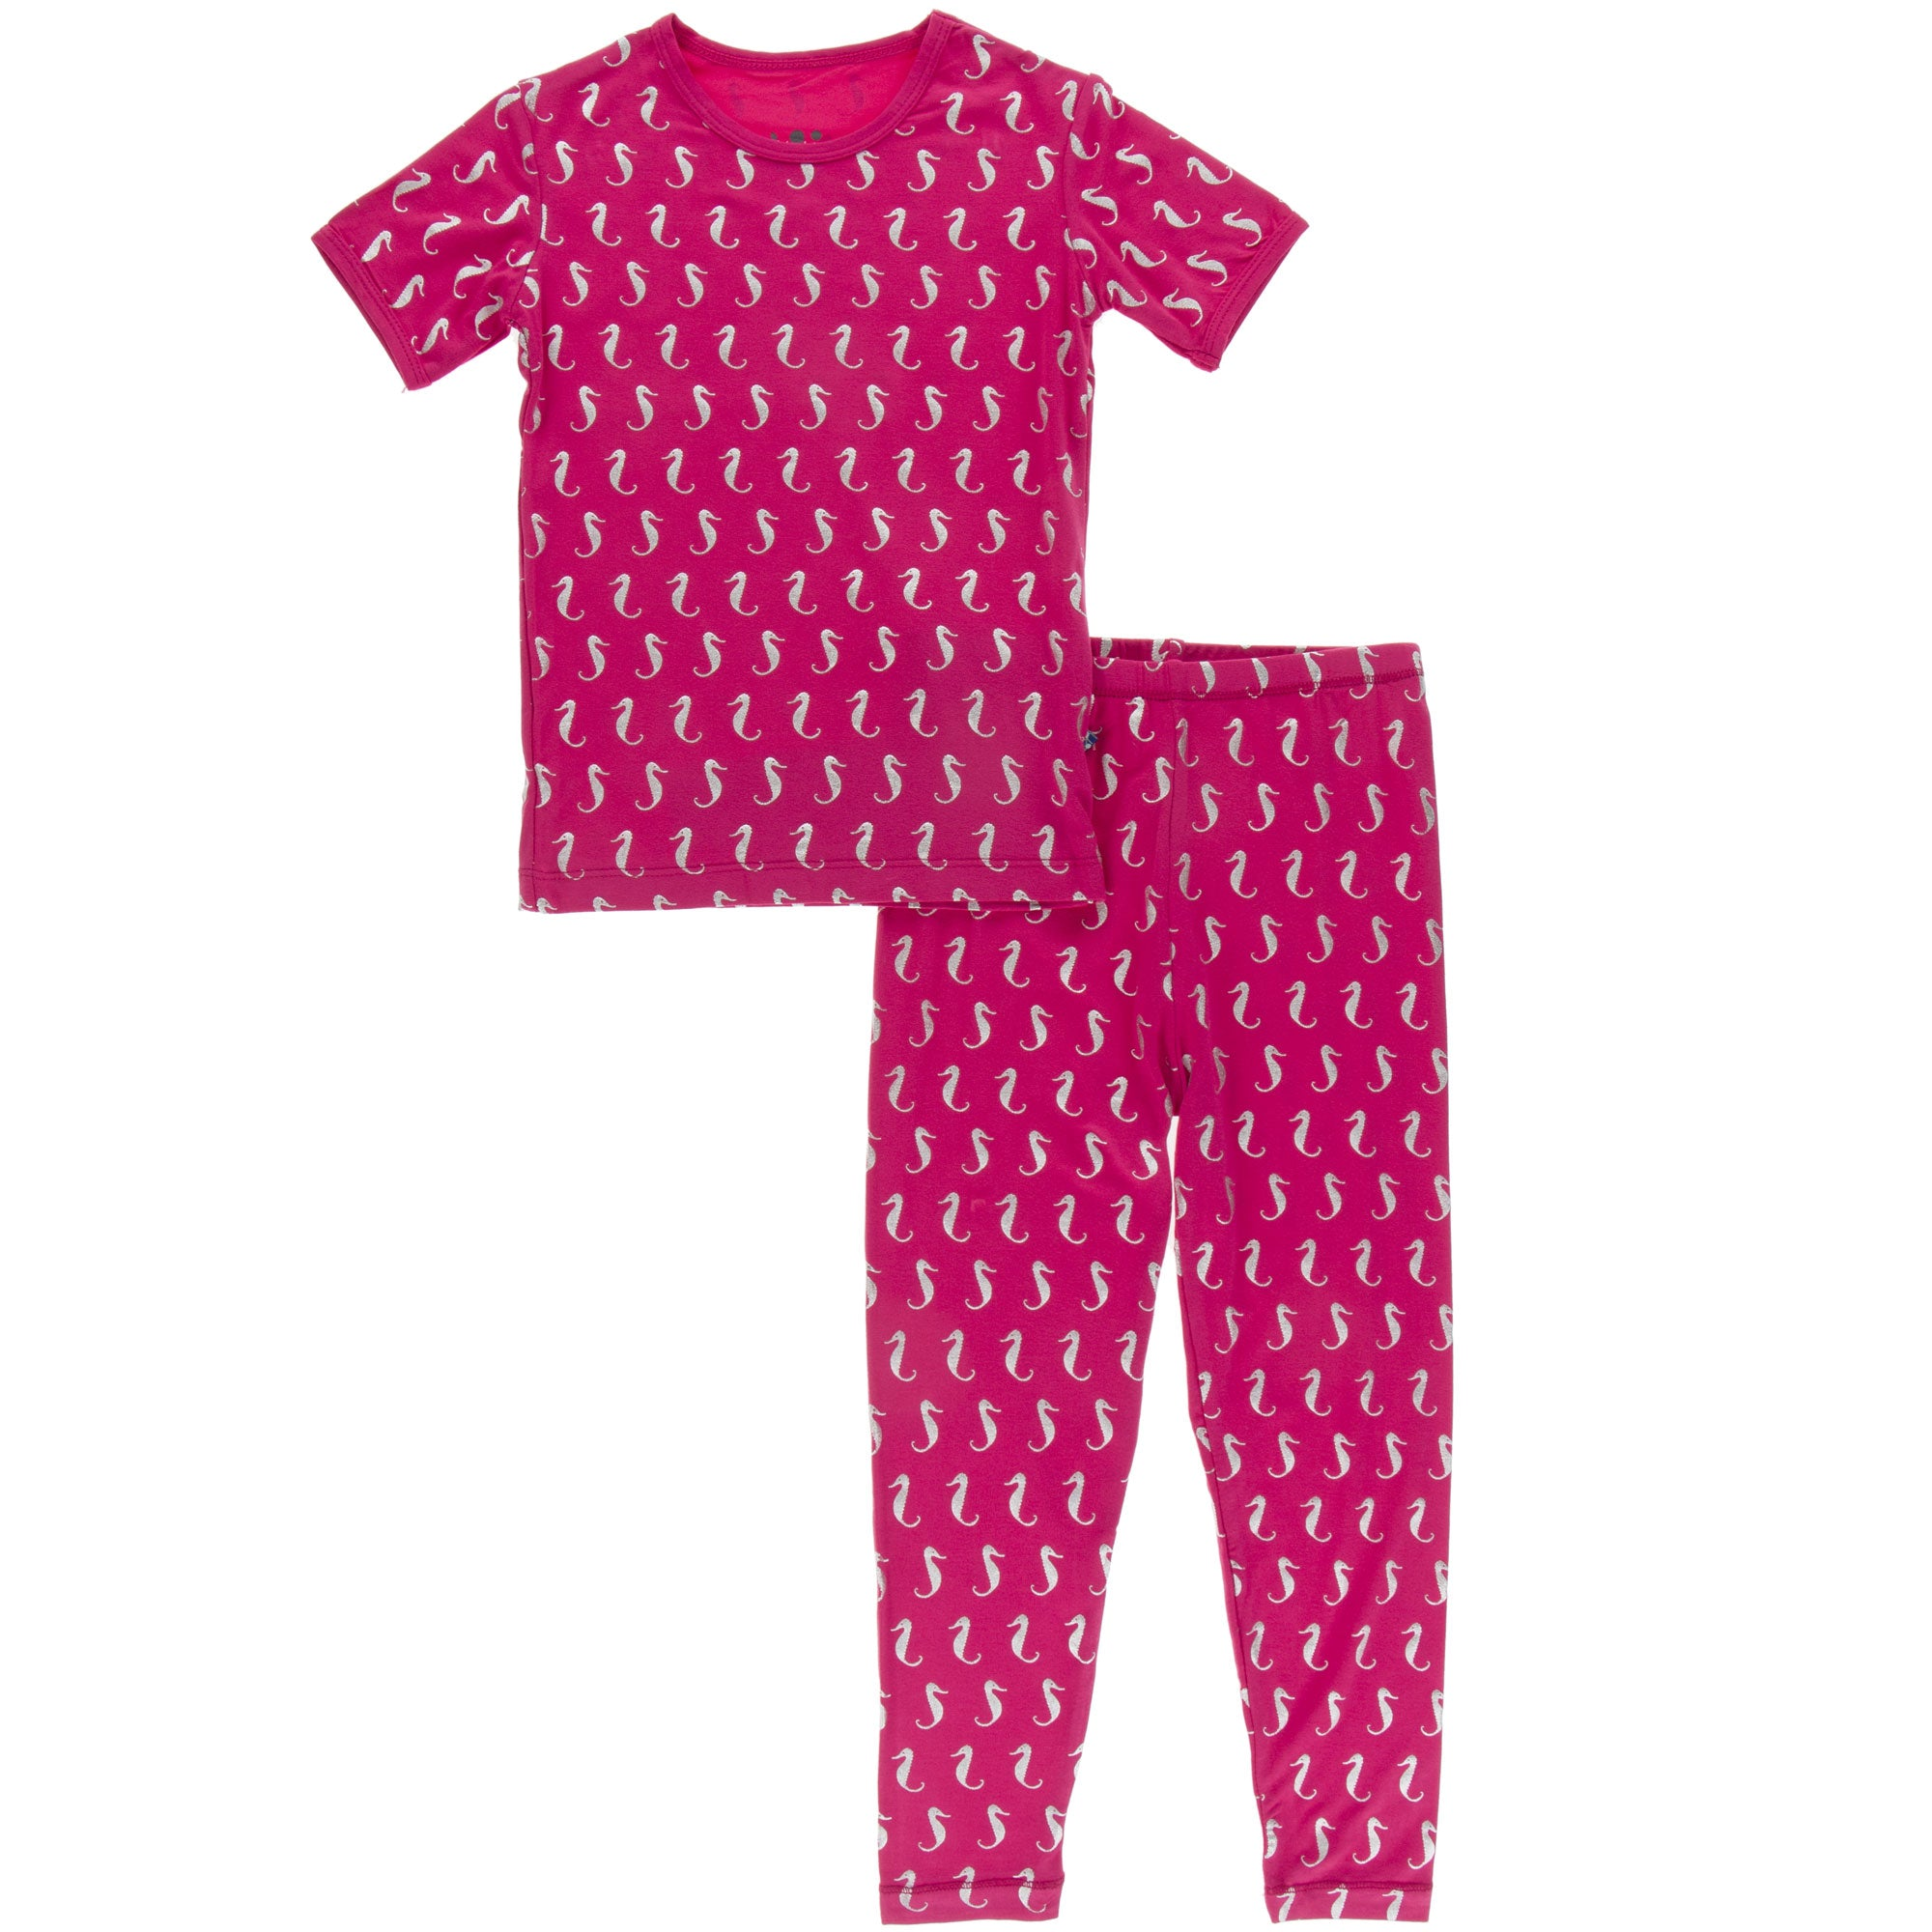 KicKee Pants Short Sleeve Pajama Set - Prickly Pear Mini Seahorse